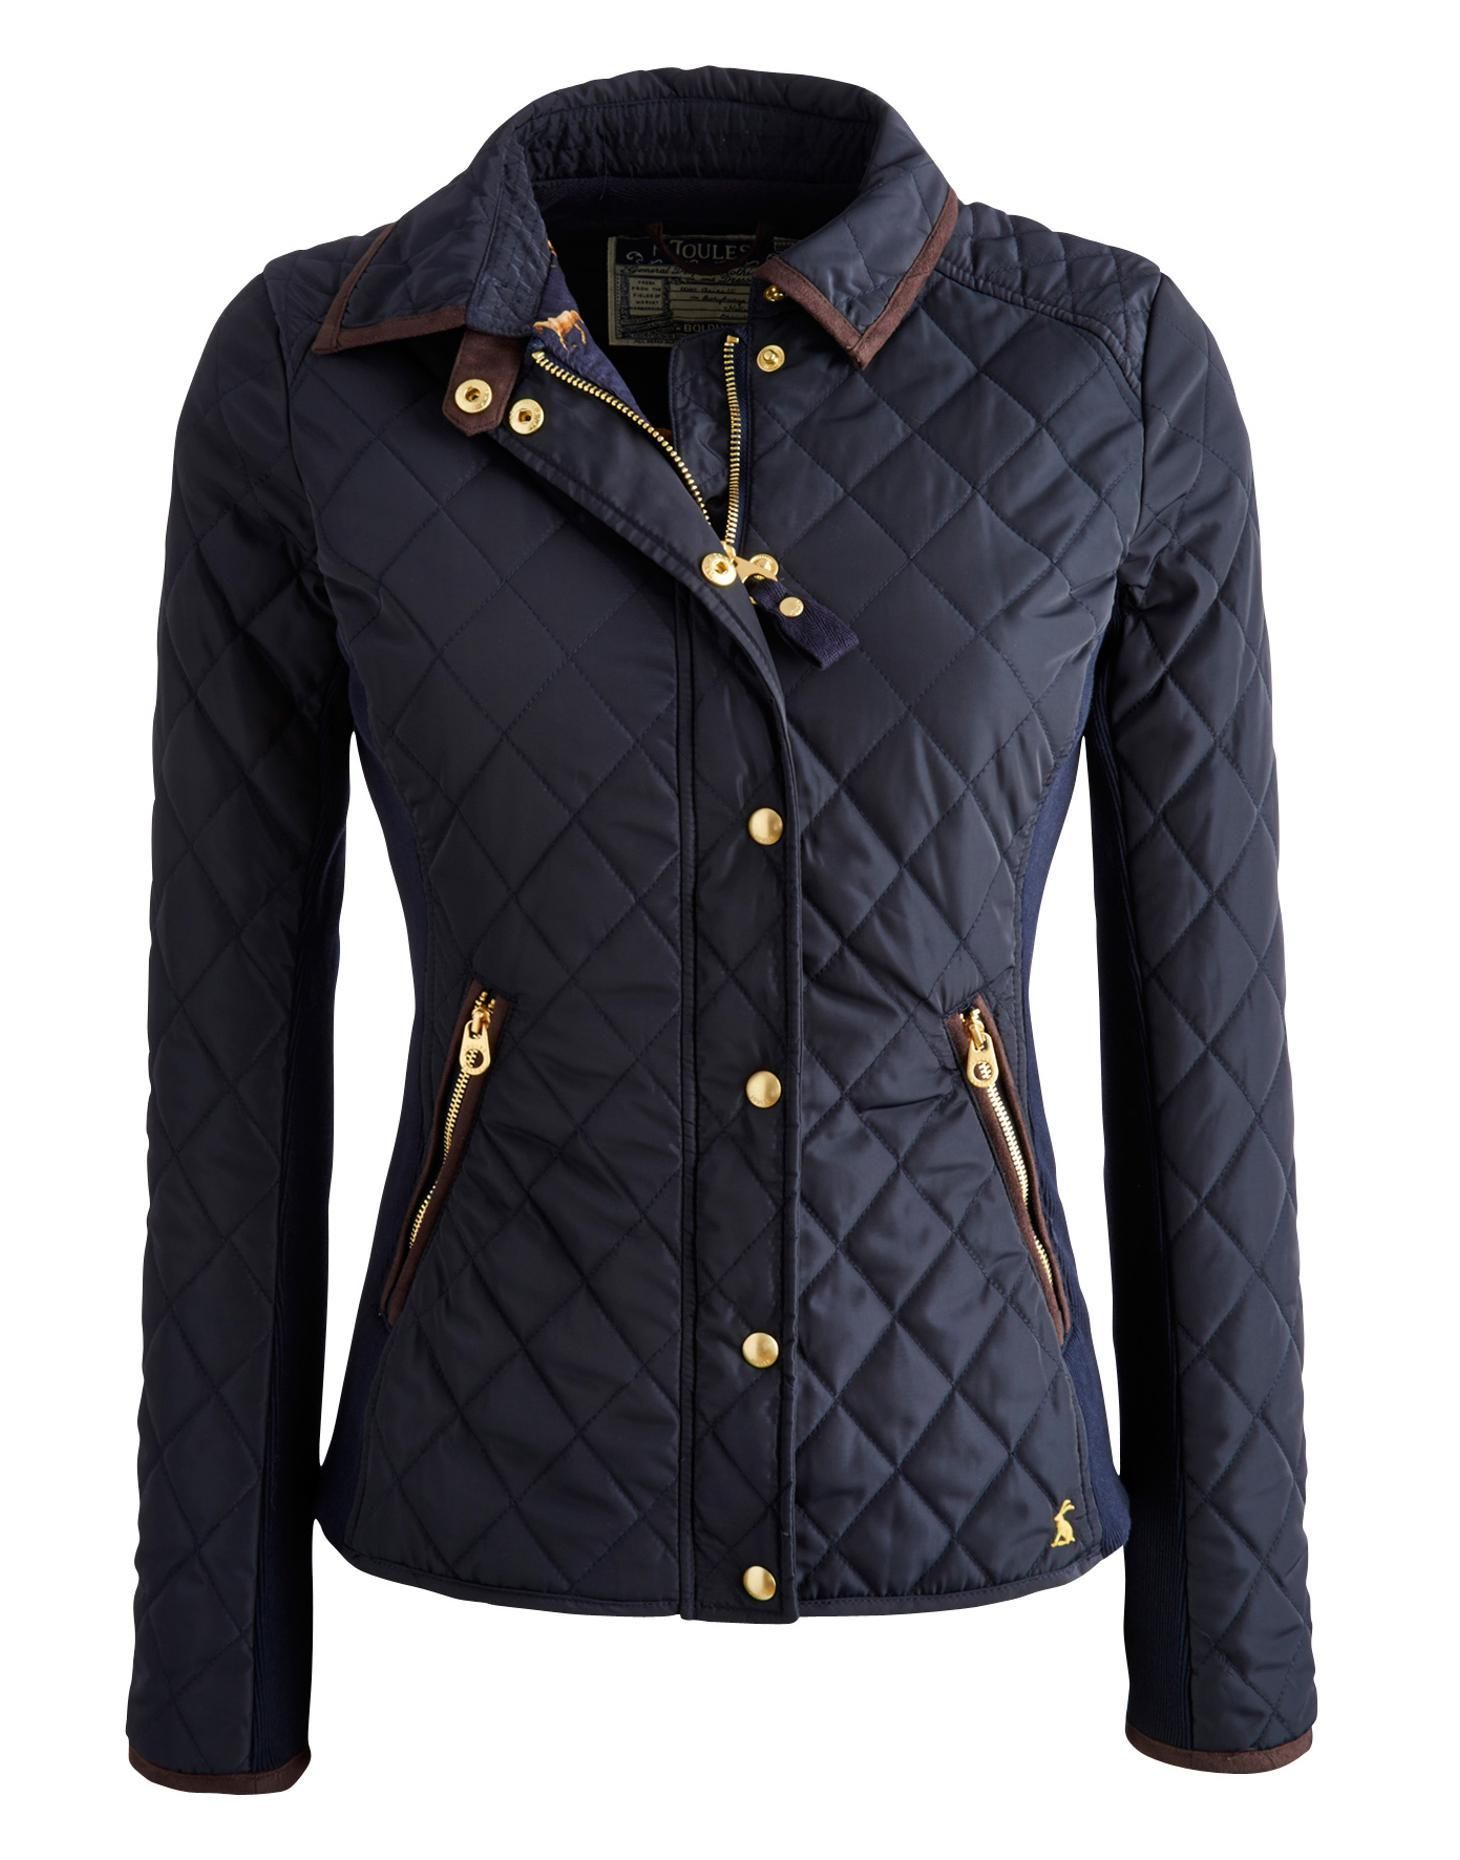 Joules Women's Jersey Ribbed Quilted Jacket, Marine Navy. The ... : ladies navy quilted jackets - Adamdwight.com